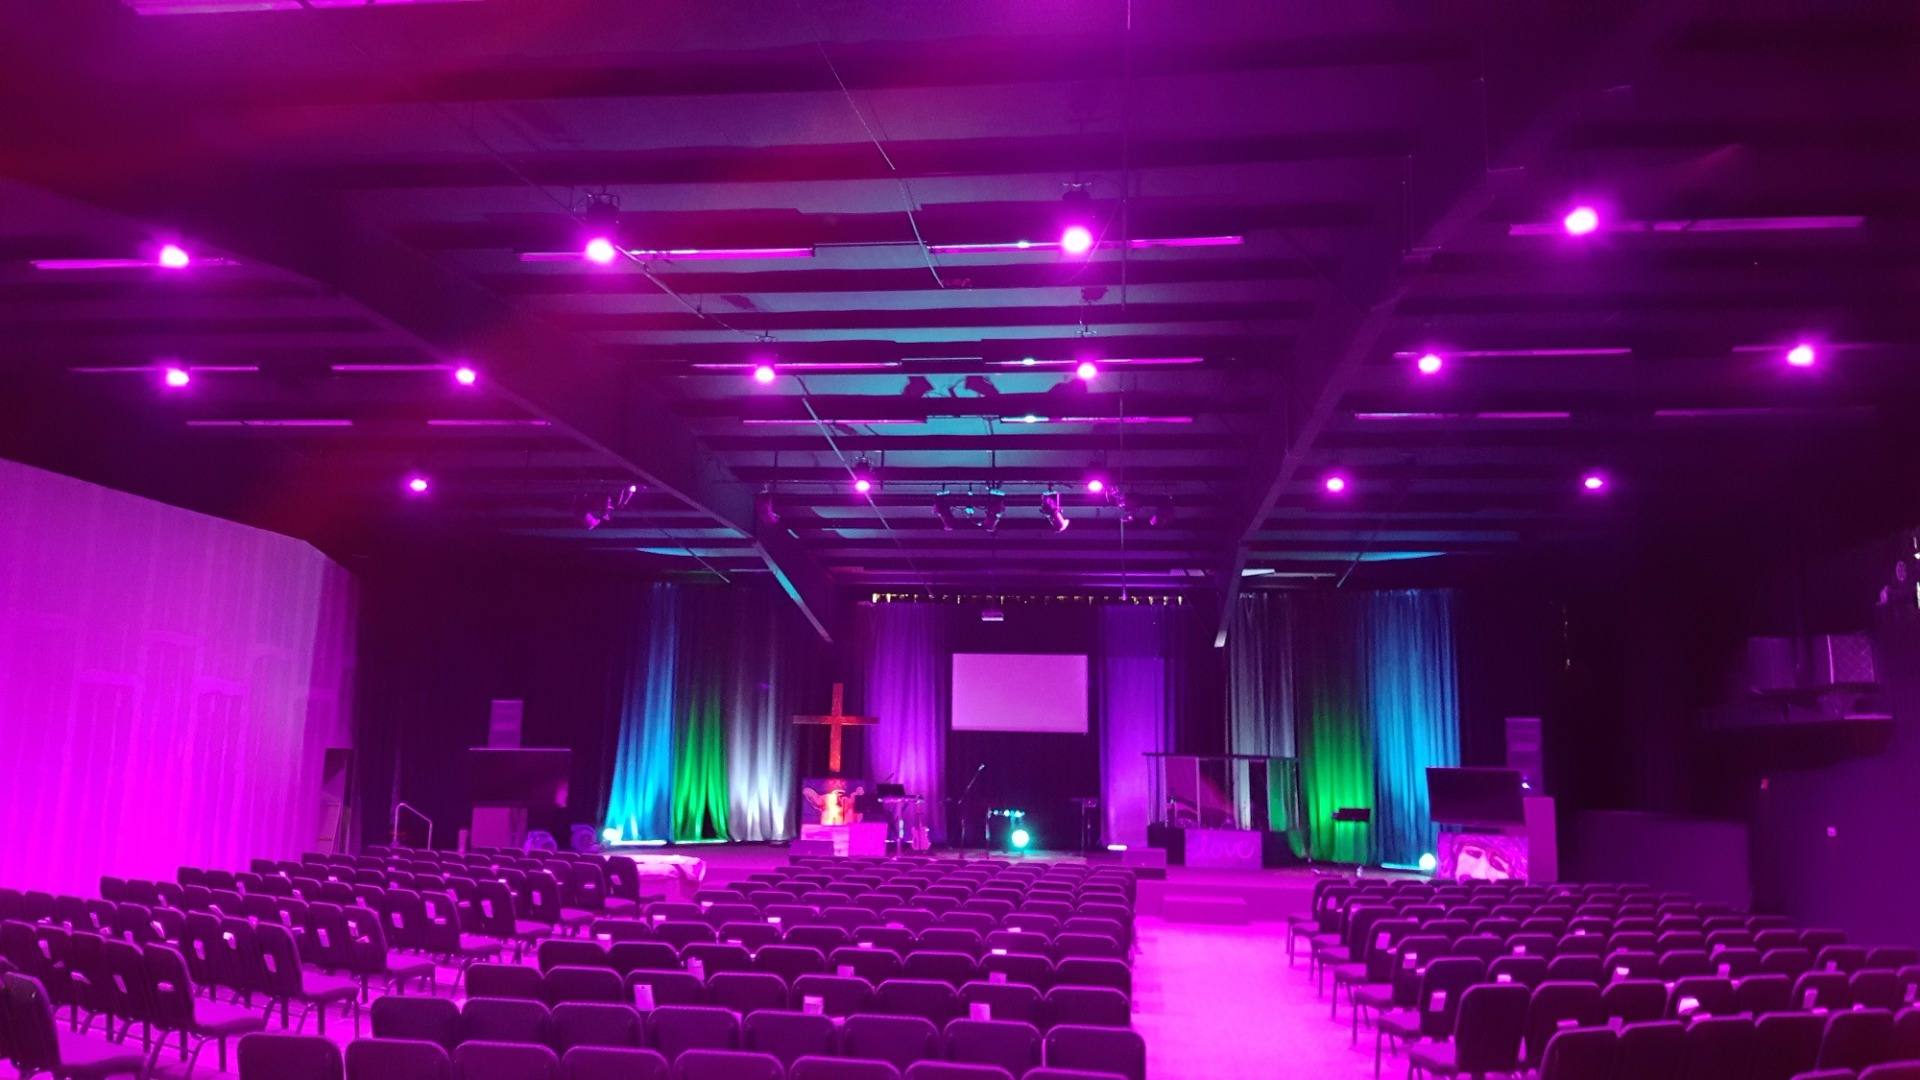 Oklahoma S Vintage Church Upgrades Lighting With Elation